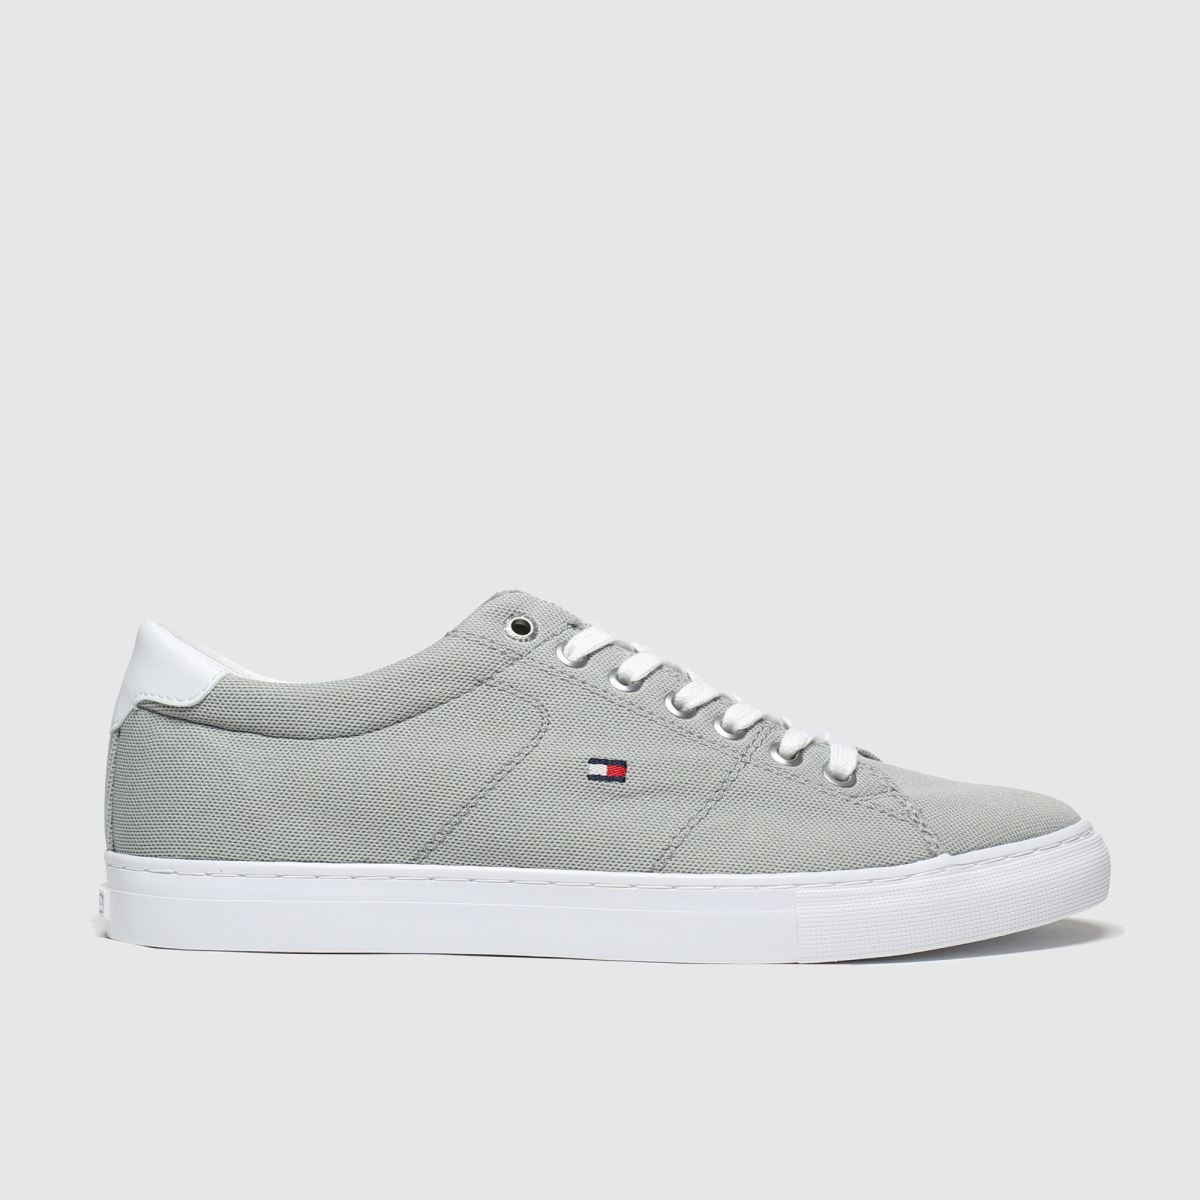 Tommy Hilfiger Grey Textile Sneaker Trainers